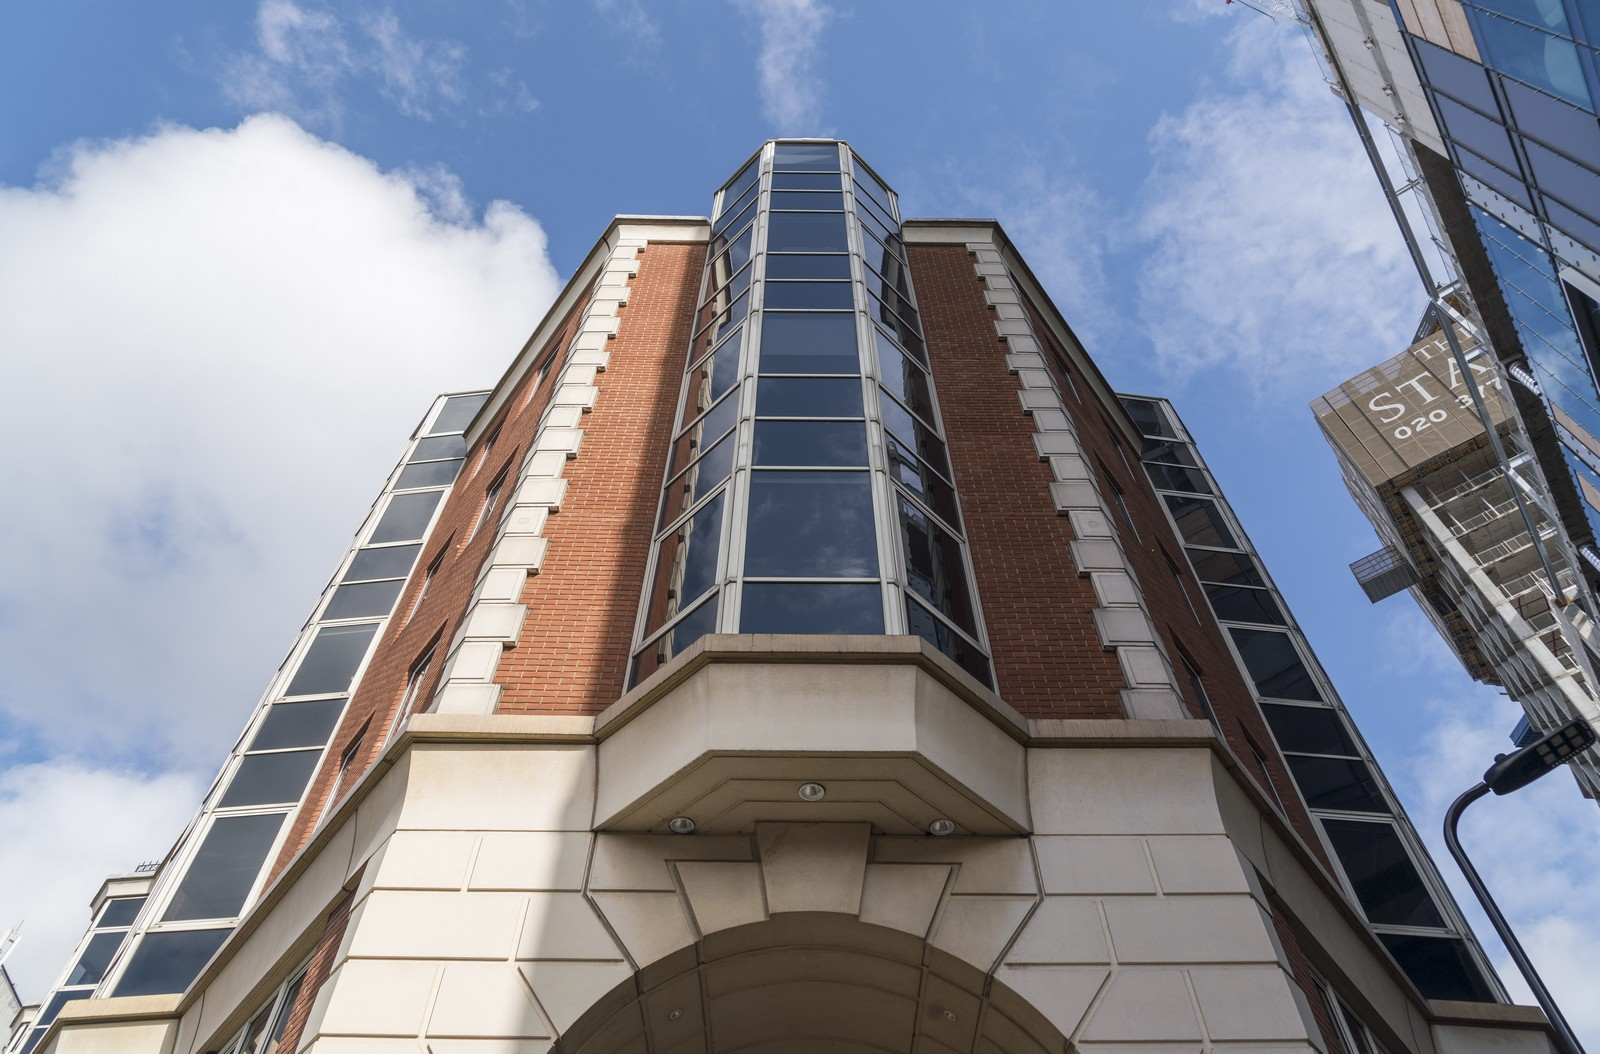 Weston House, 42 Curtain Road, Old Street, EC2